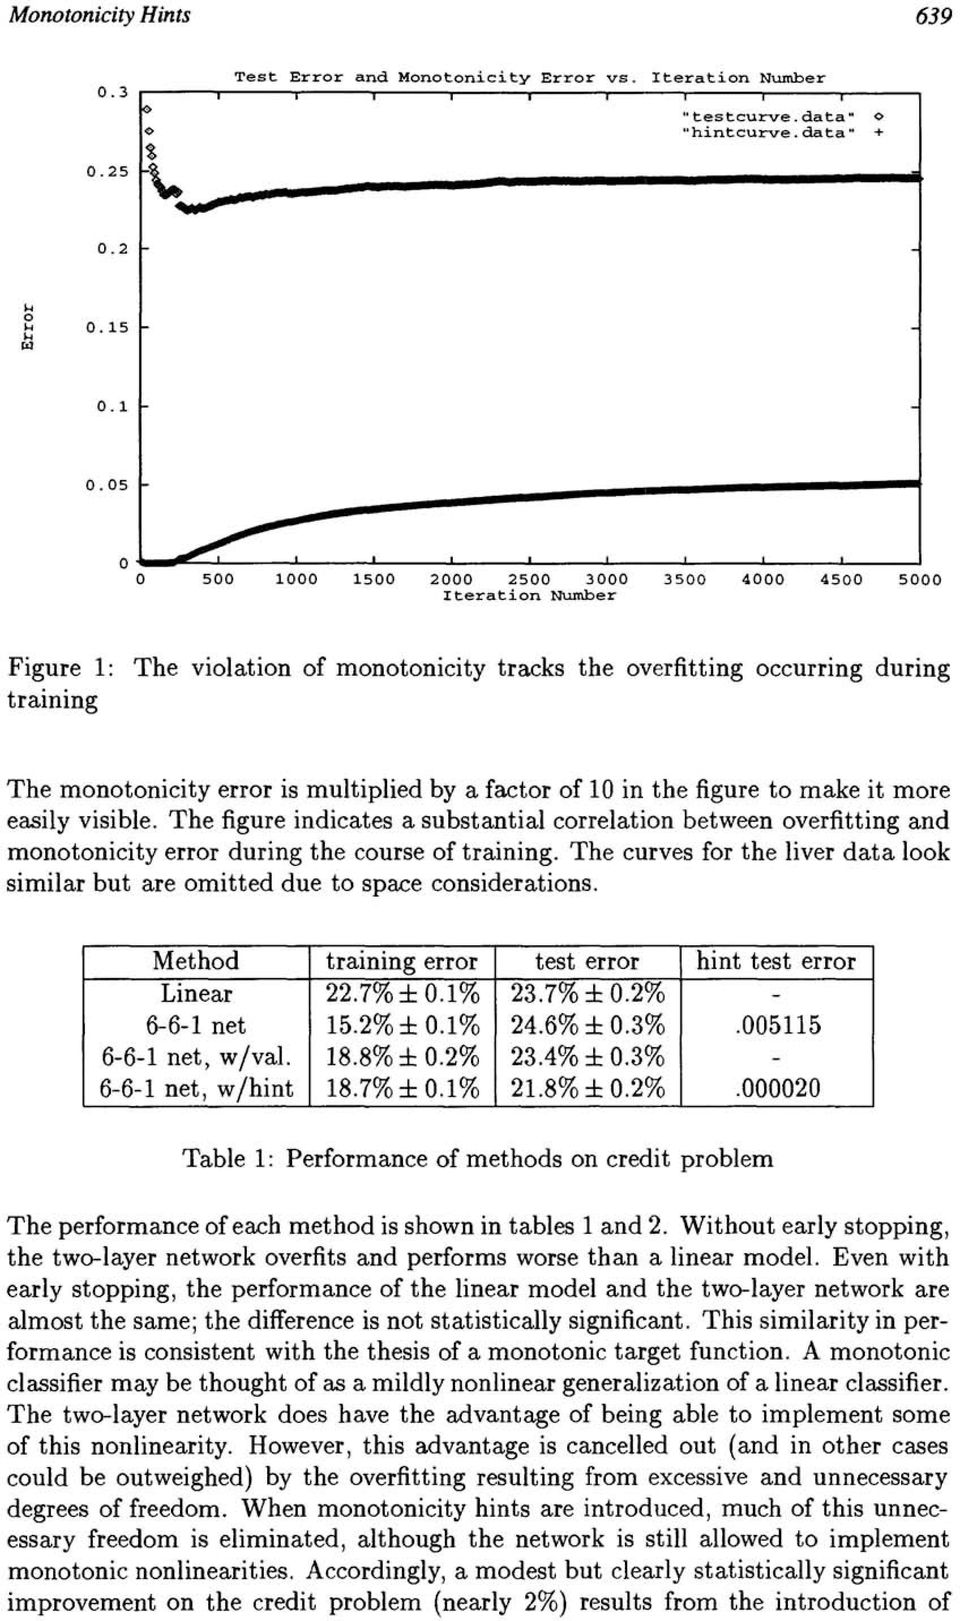 05 500 1000 1500 2000 2500 3000 Iteration Number 3500 4000 4500 5000 Figure 1: The violation of monotonicity tracks the overfitting occurring during training The monotonicity error is multiplied by a